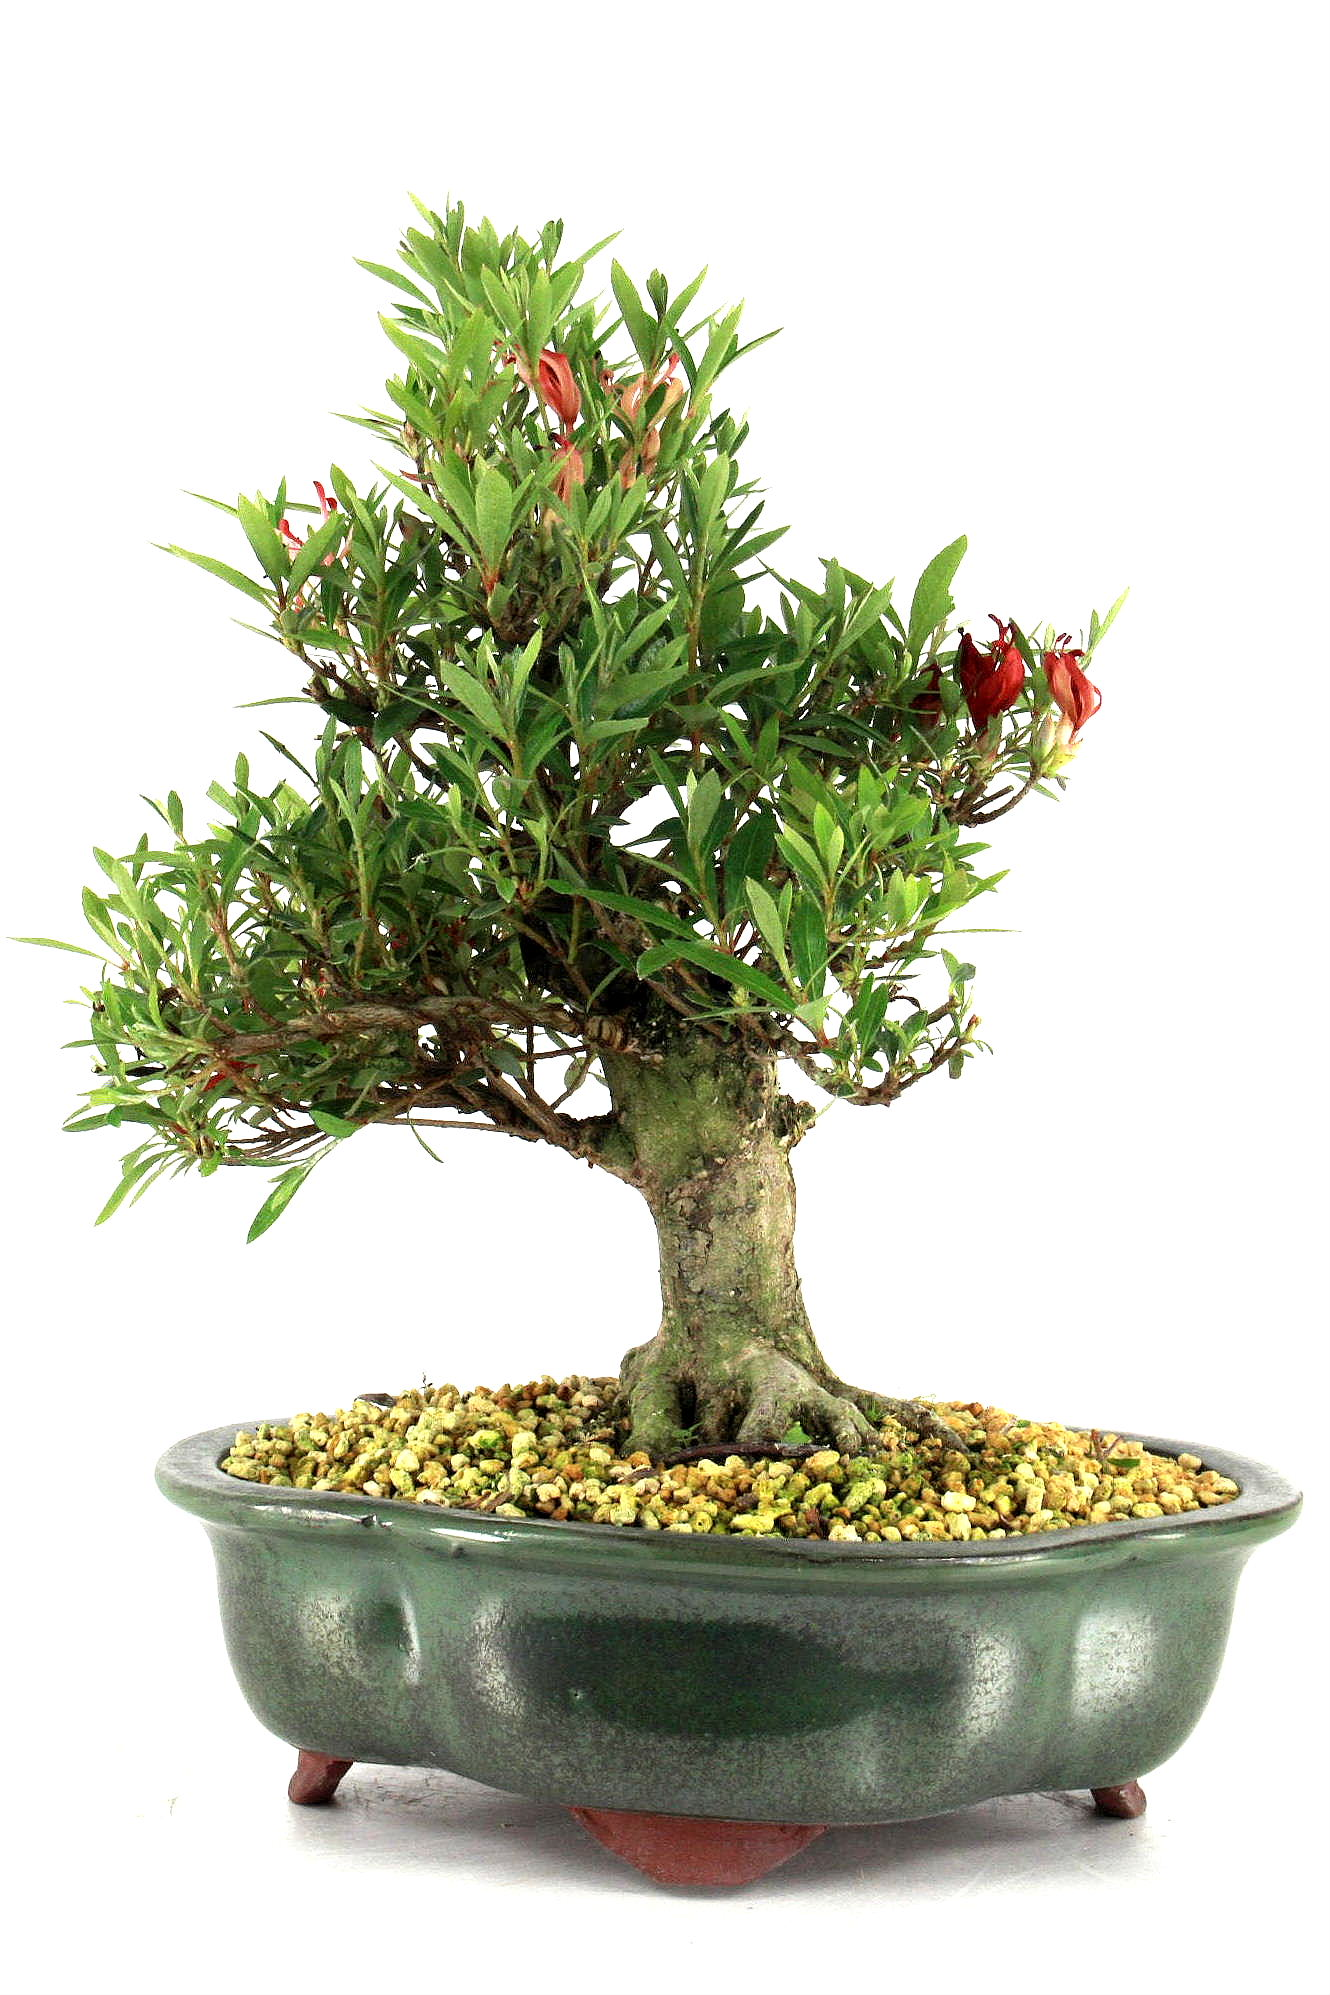 Azalee rhododendron indicum 32 cm 2512 bei oyaki bonsai kaufen for Bonsai onlineshop